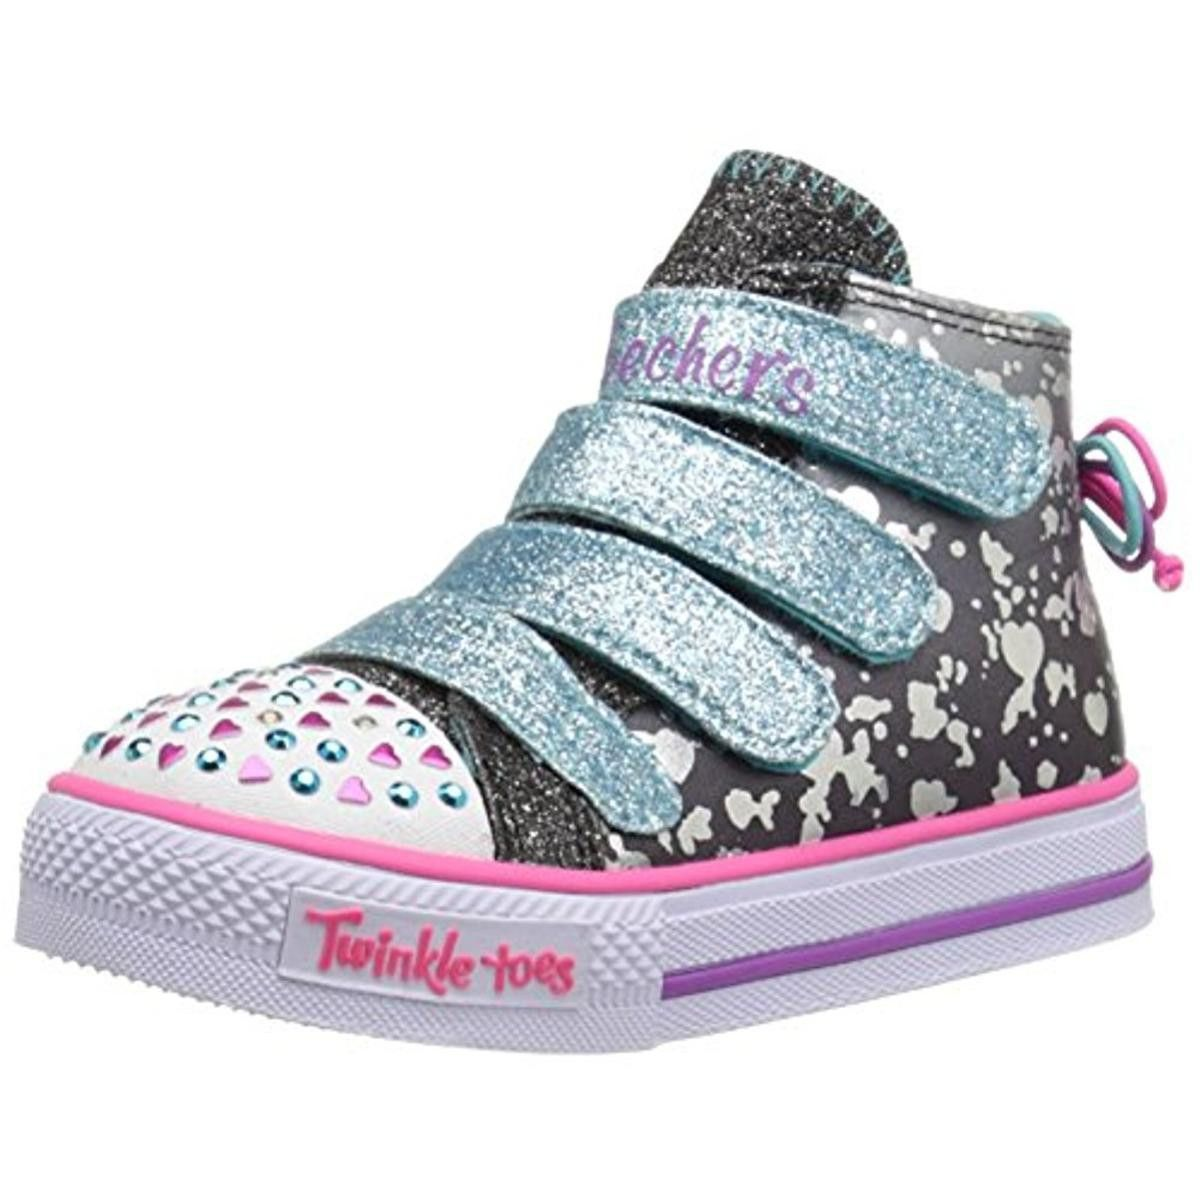 Skechers Girls Skip N Jump Light Up Glitter Fashion Sneakers